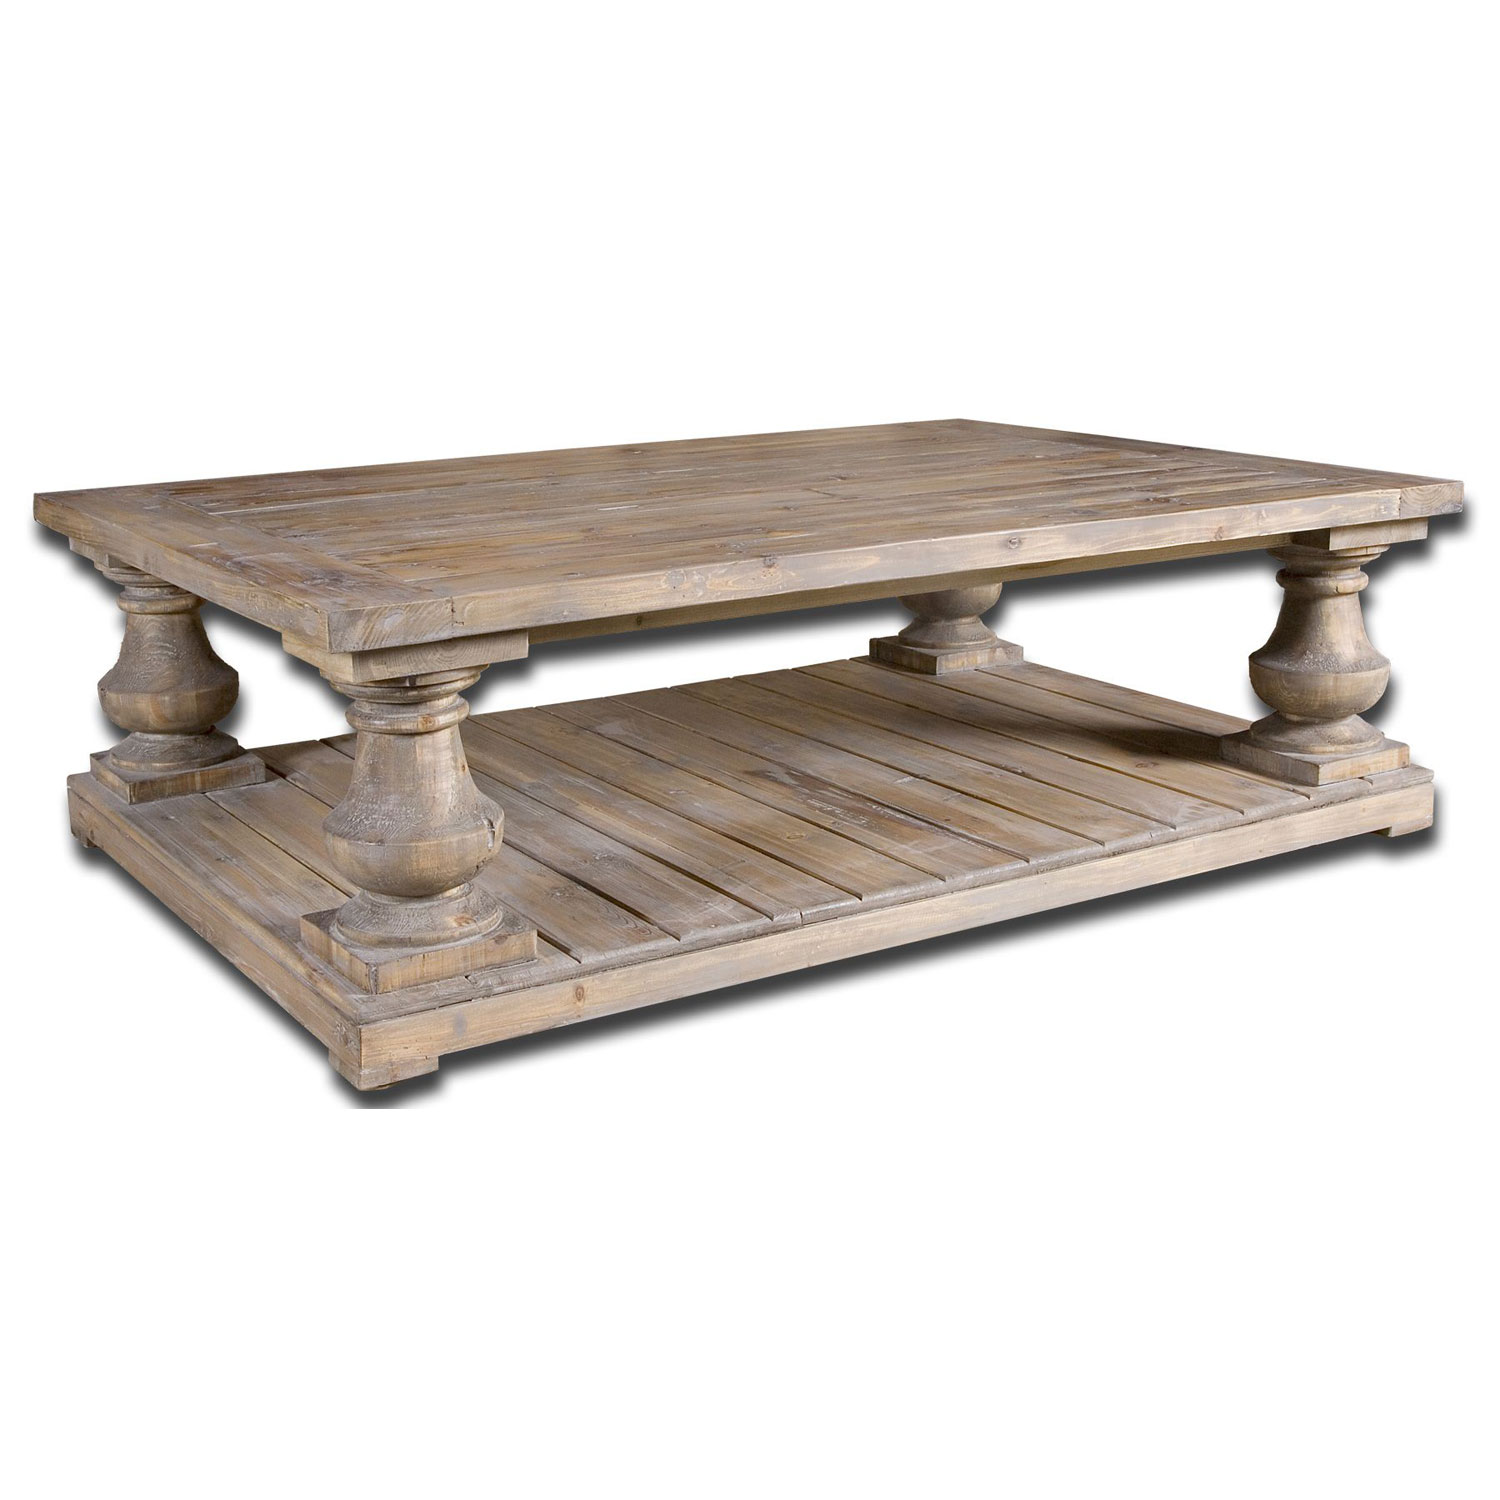 uttermost stratford fir wood cocktail table bellacor threshold accent hover zoom home wall decor simple end plans with wine rack pier outdoor pillows drum lamp shades mainstays